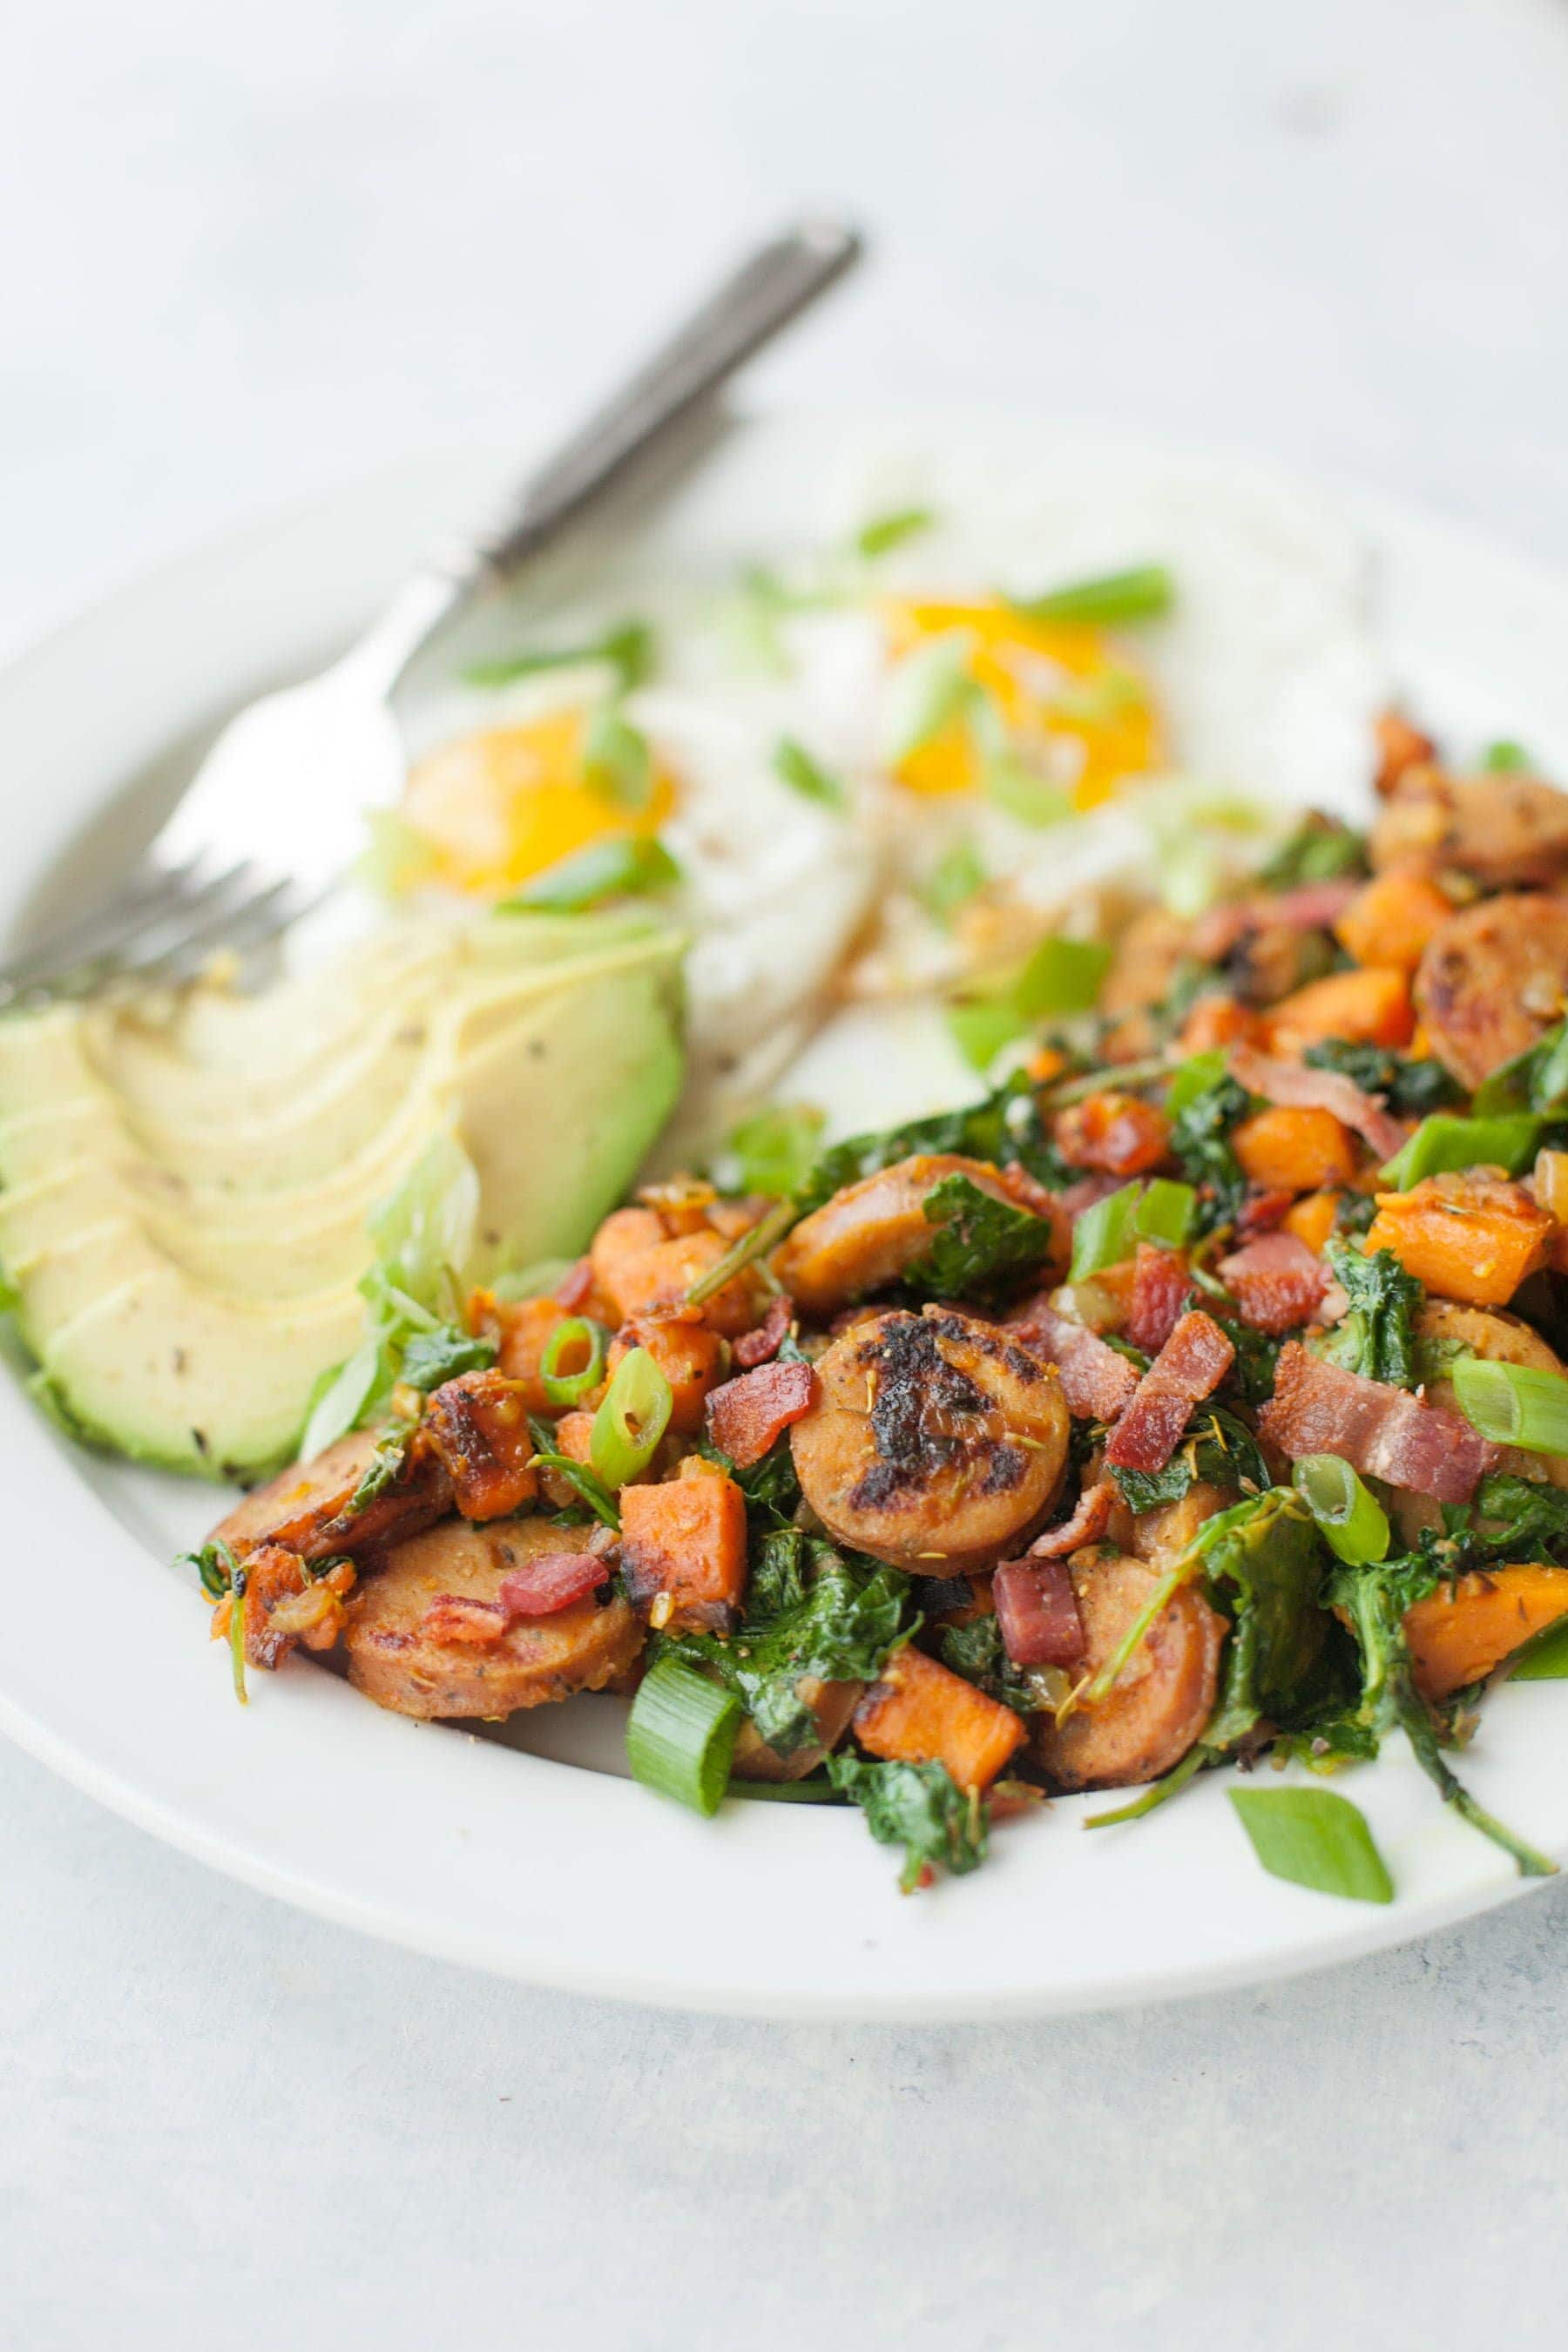 Tight view of white plate with sweet potato hash, eggs, and avocado